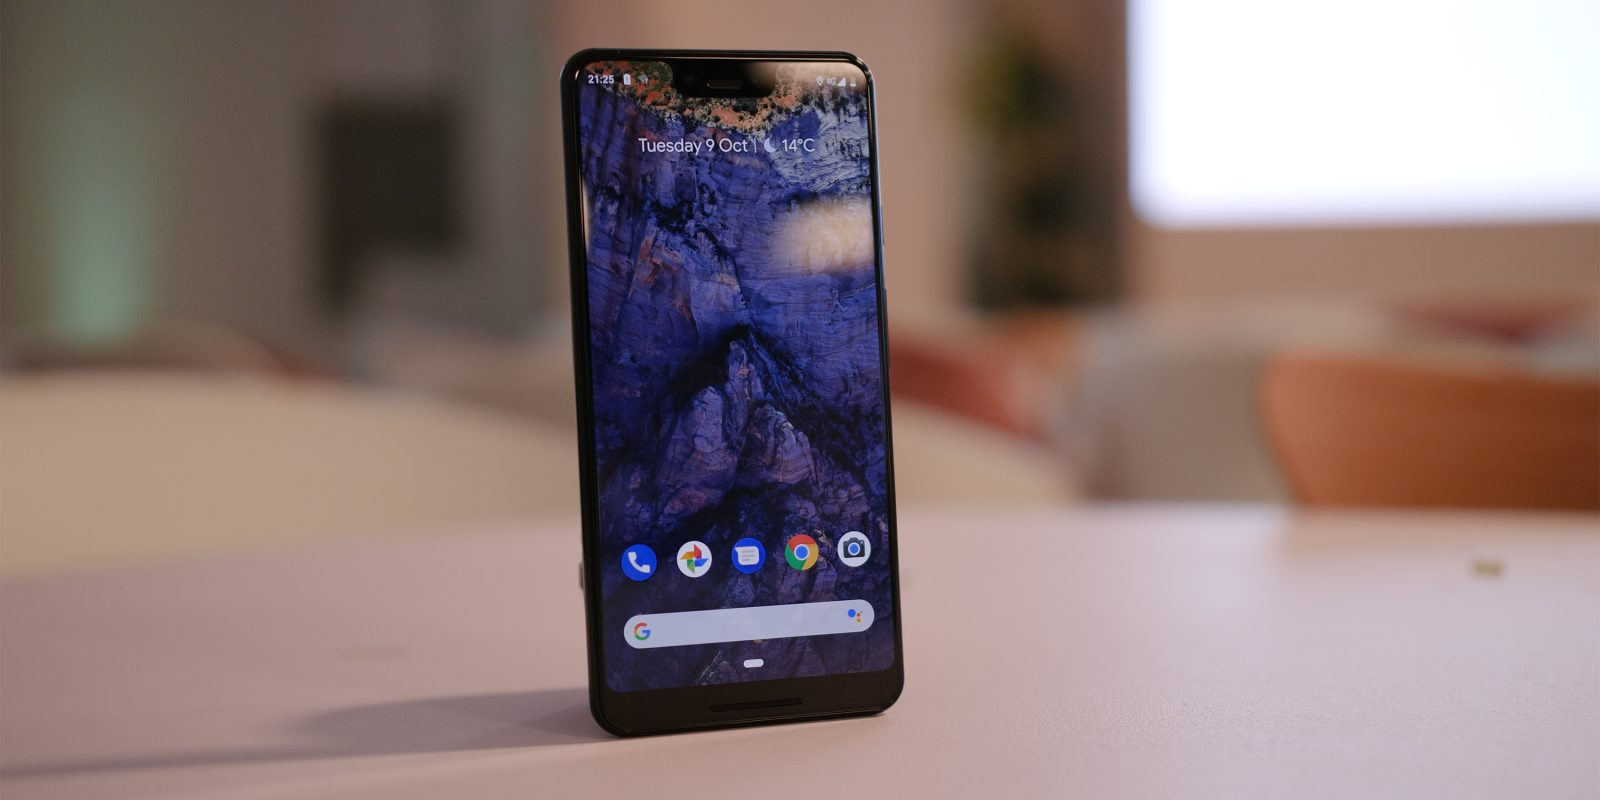 Exclusive Google hid the Easter eggs in the Pixel 3 and 3 XL